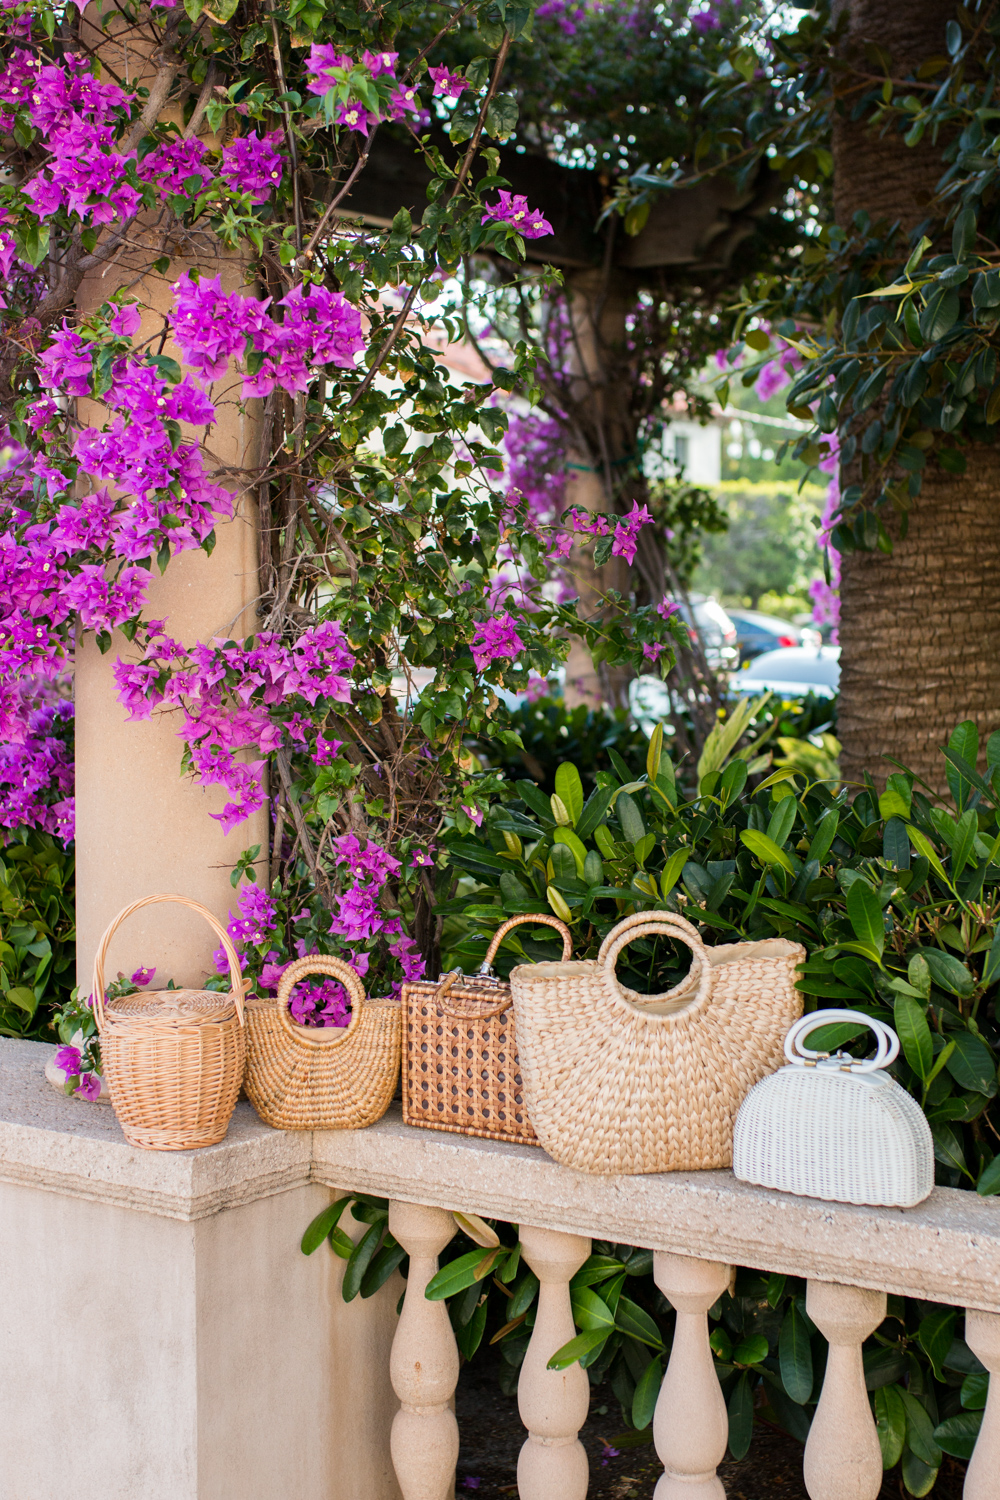 Basket Bags in West Palm Beach, Florida - Sunshine Style